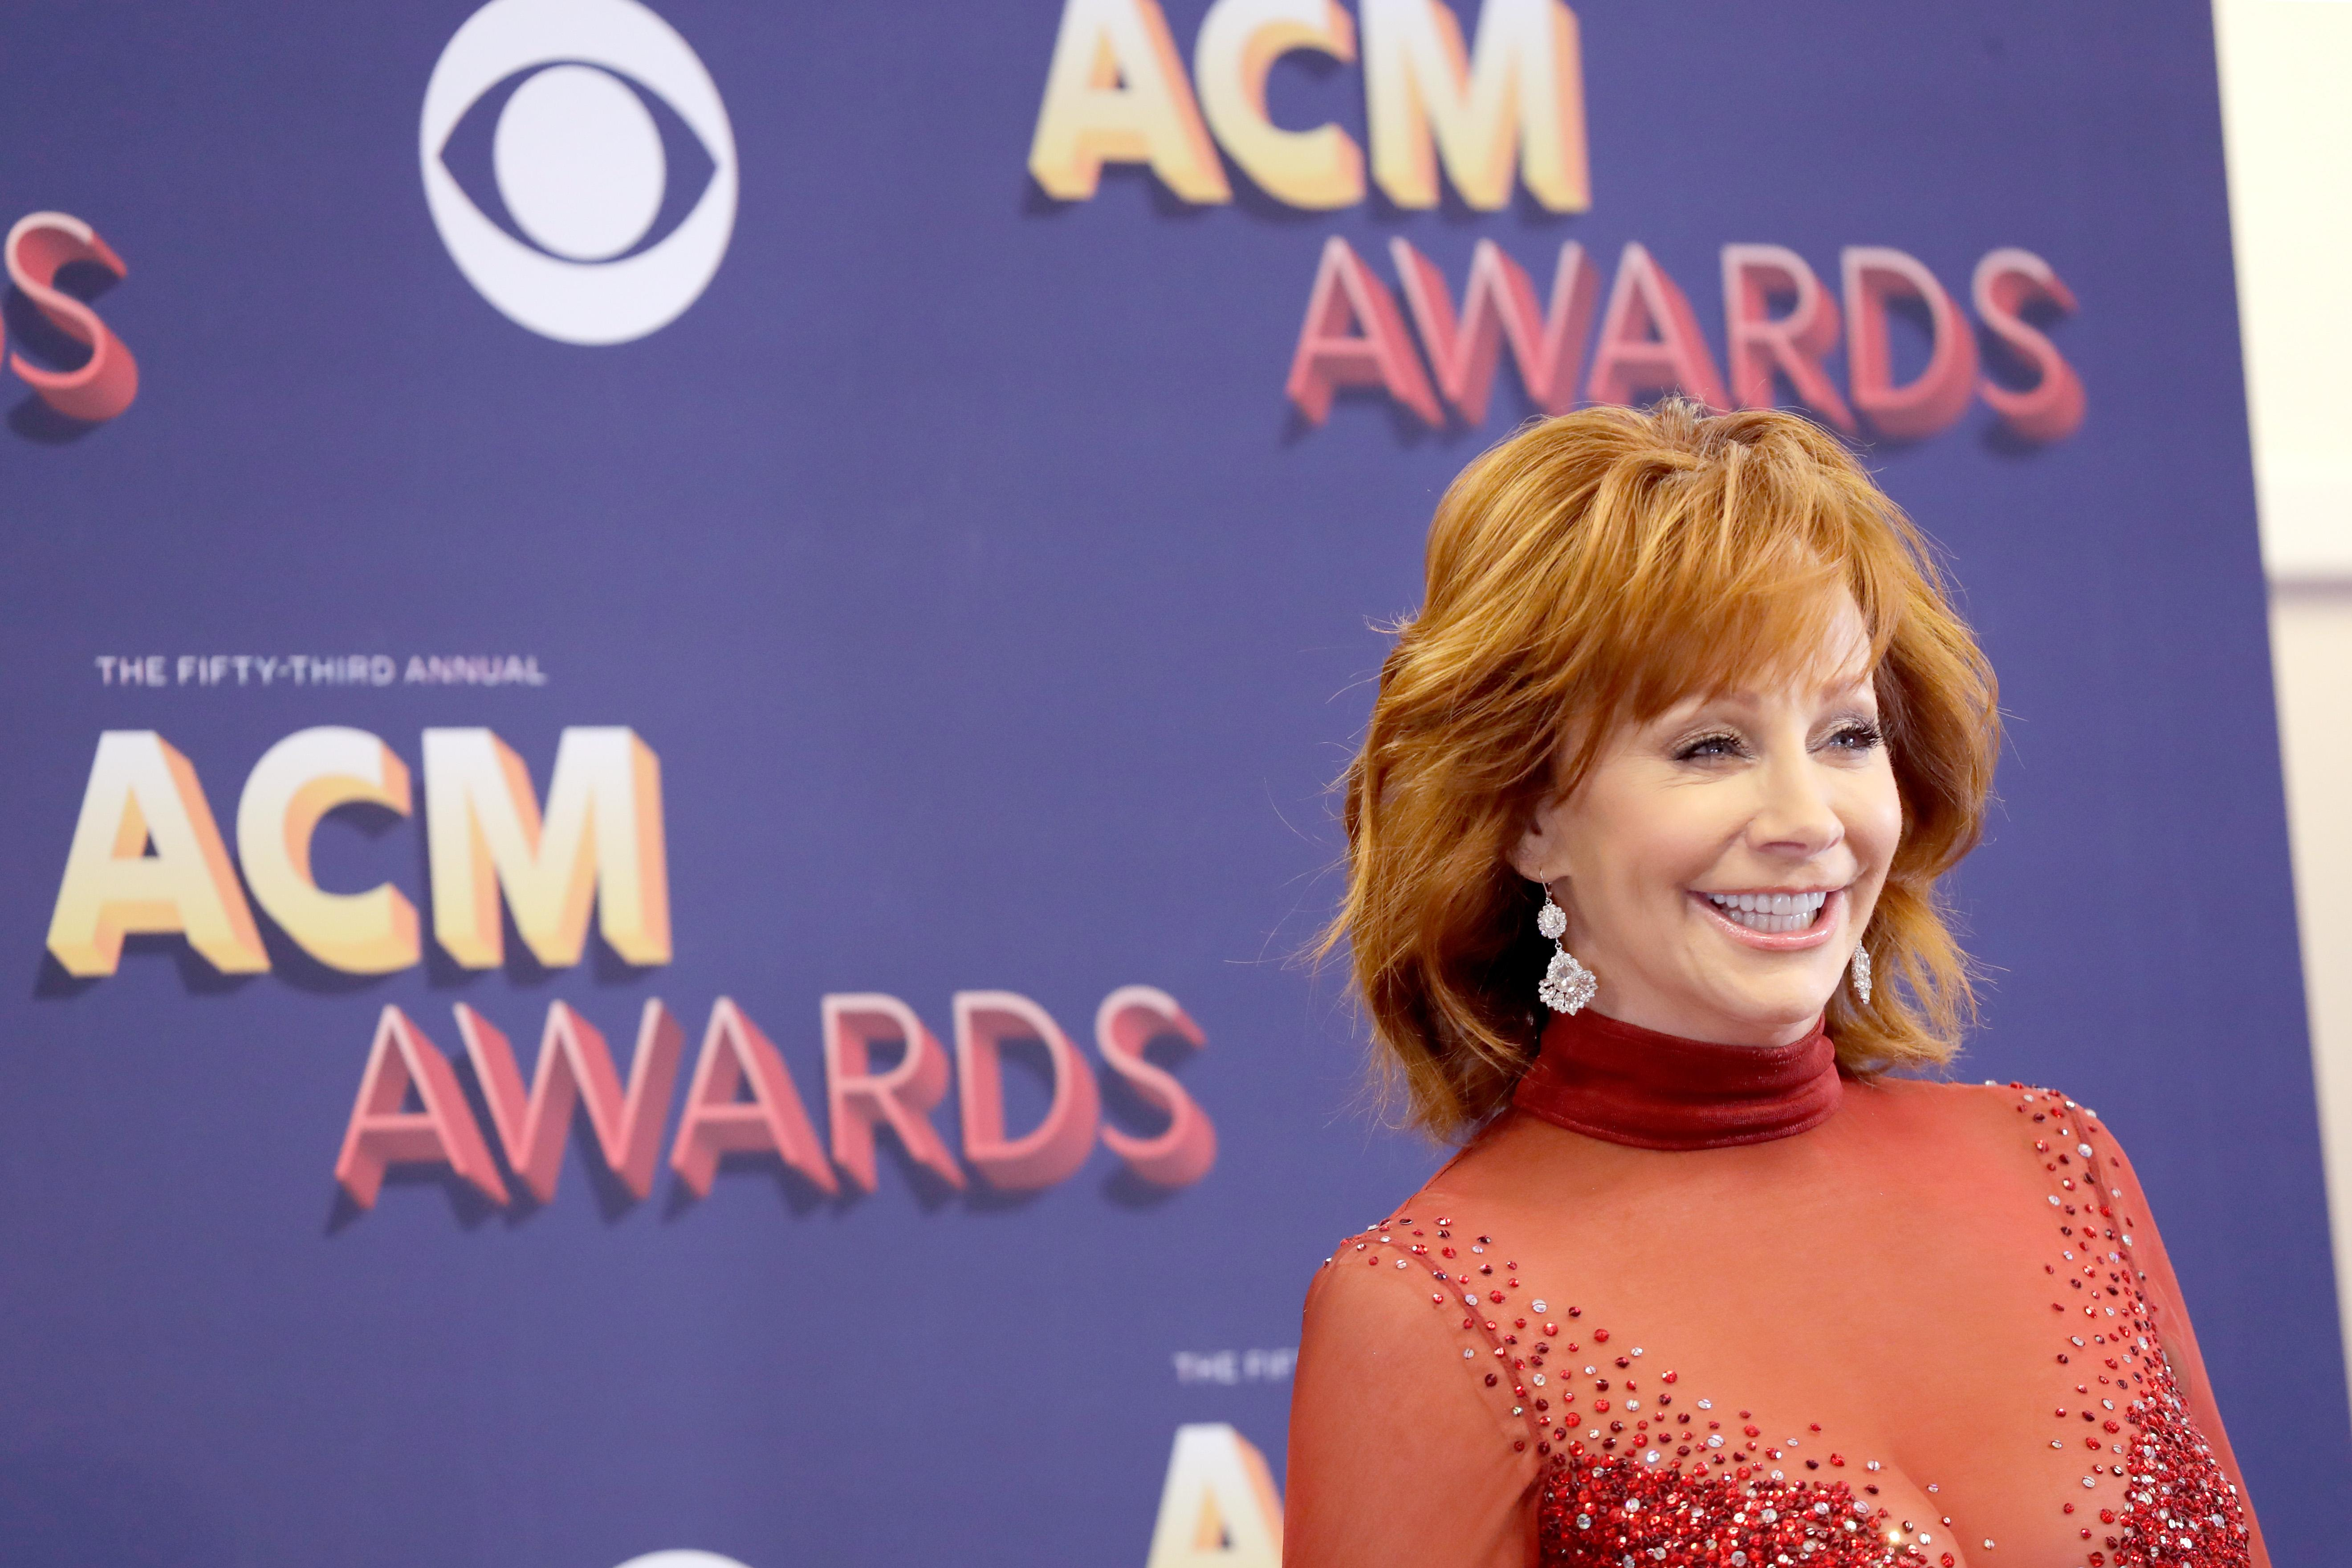 Watch Kelly Clarkson Sing a Duet With Her Mother-In-Law Reba McEntire